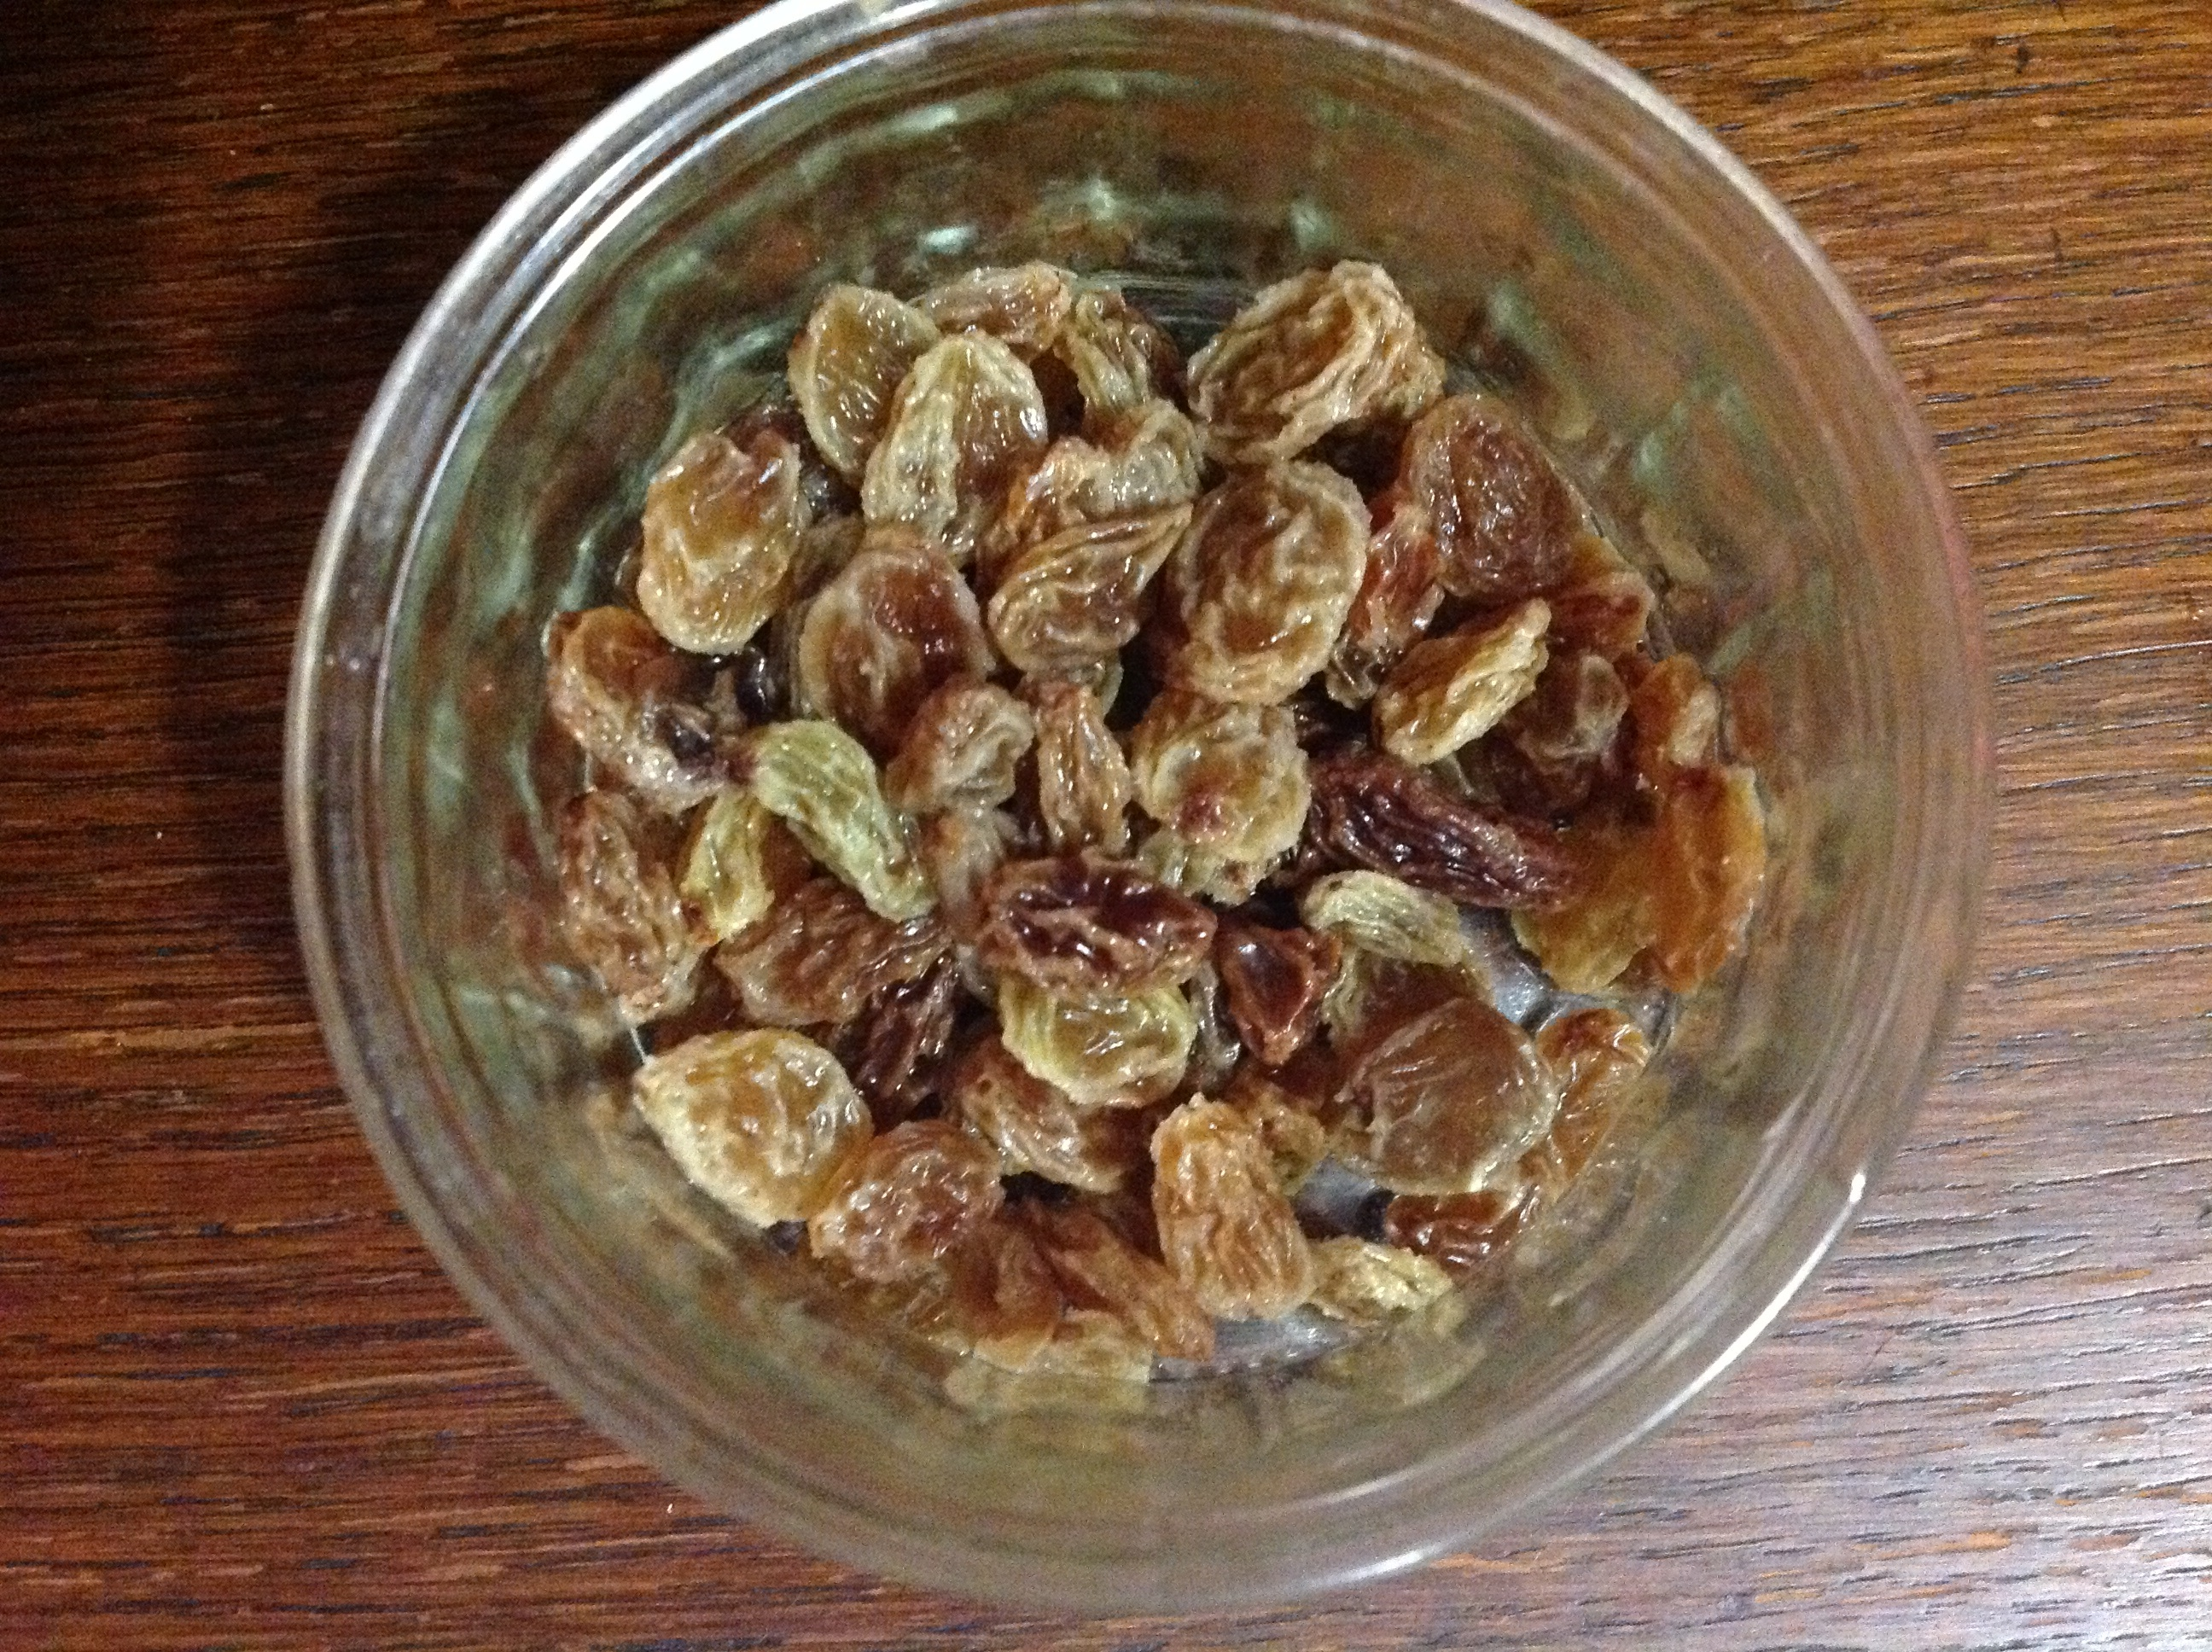 Sultanas - after soaking